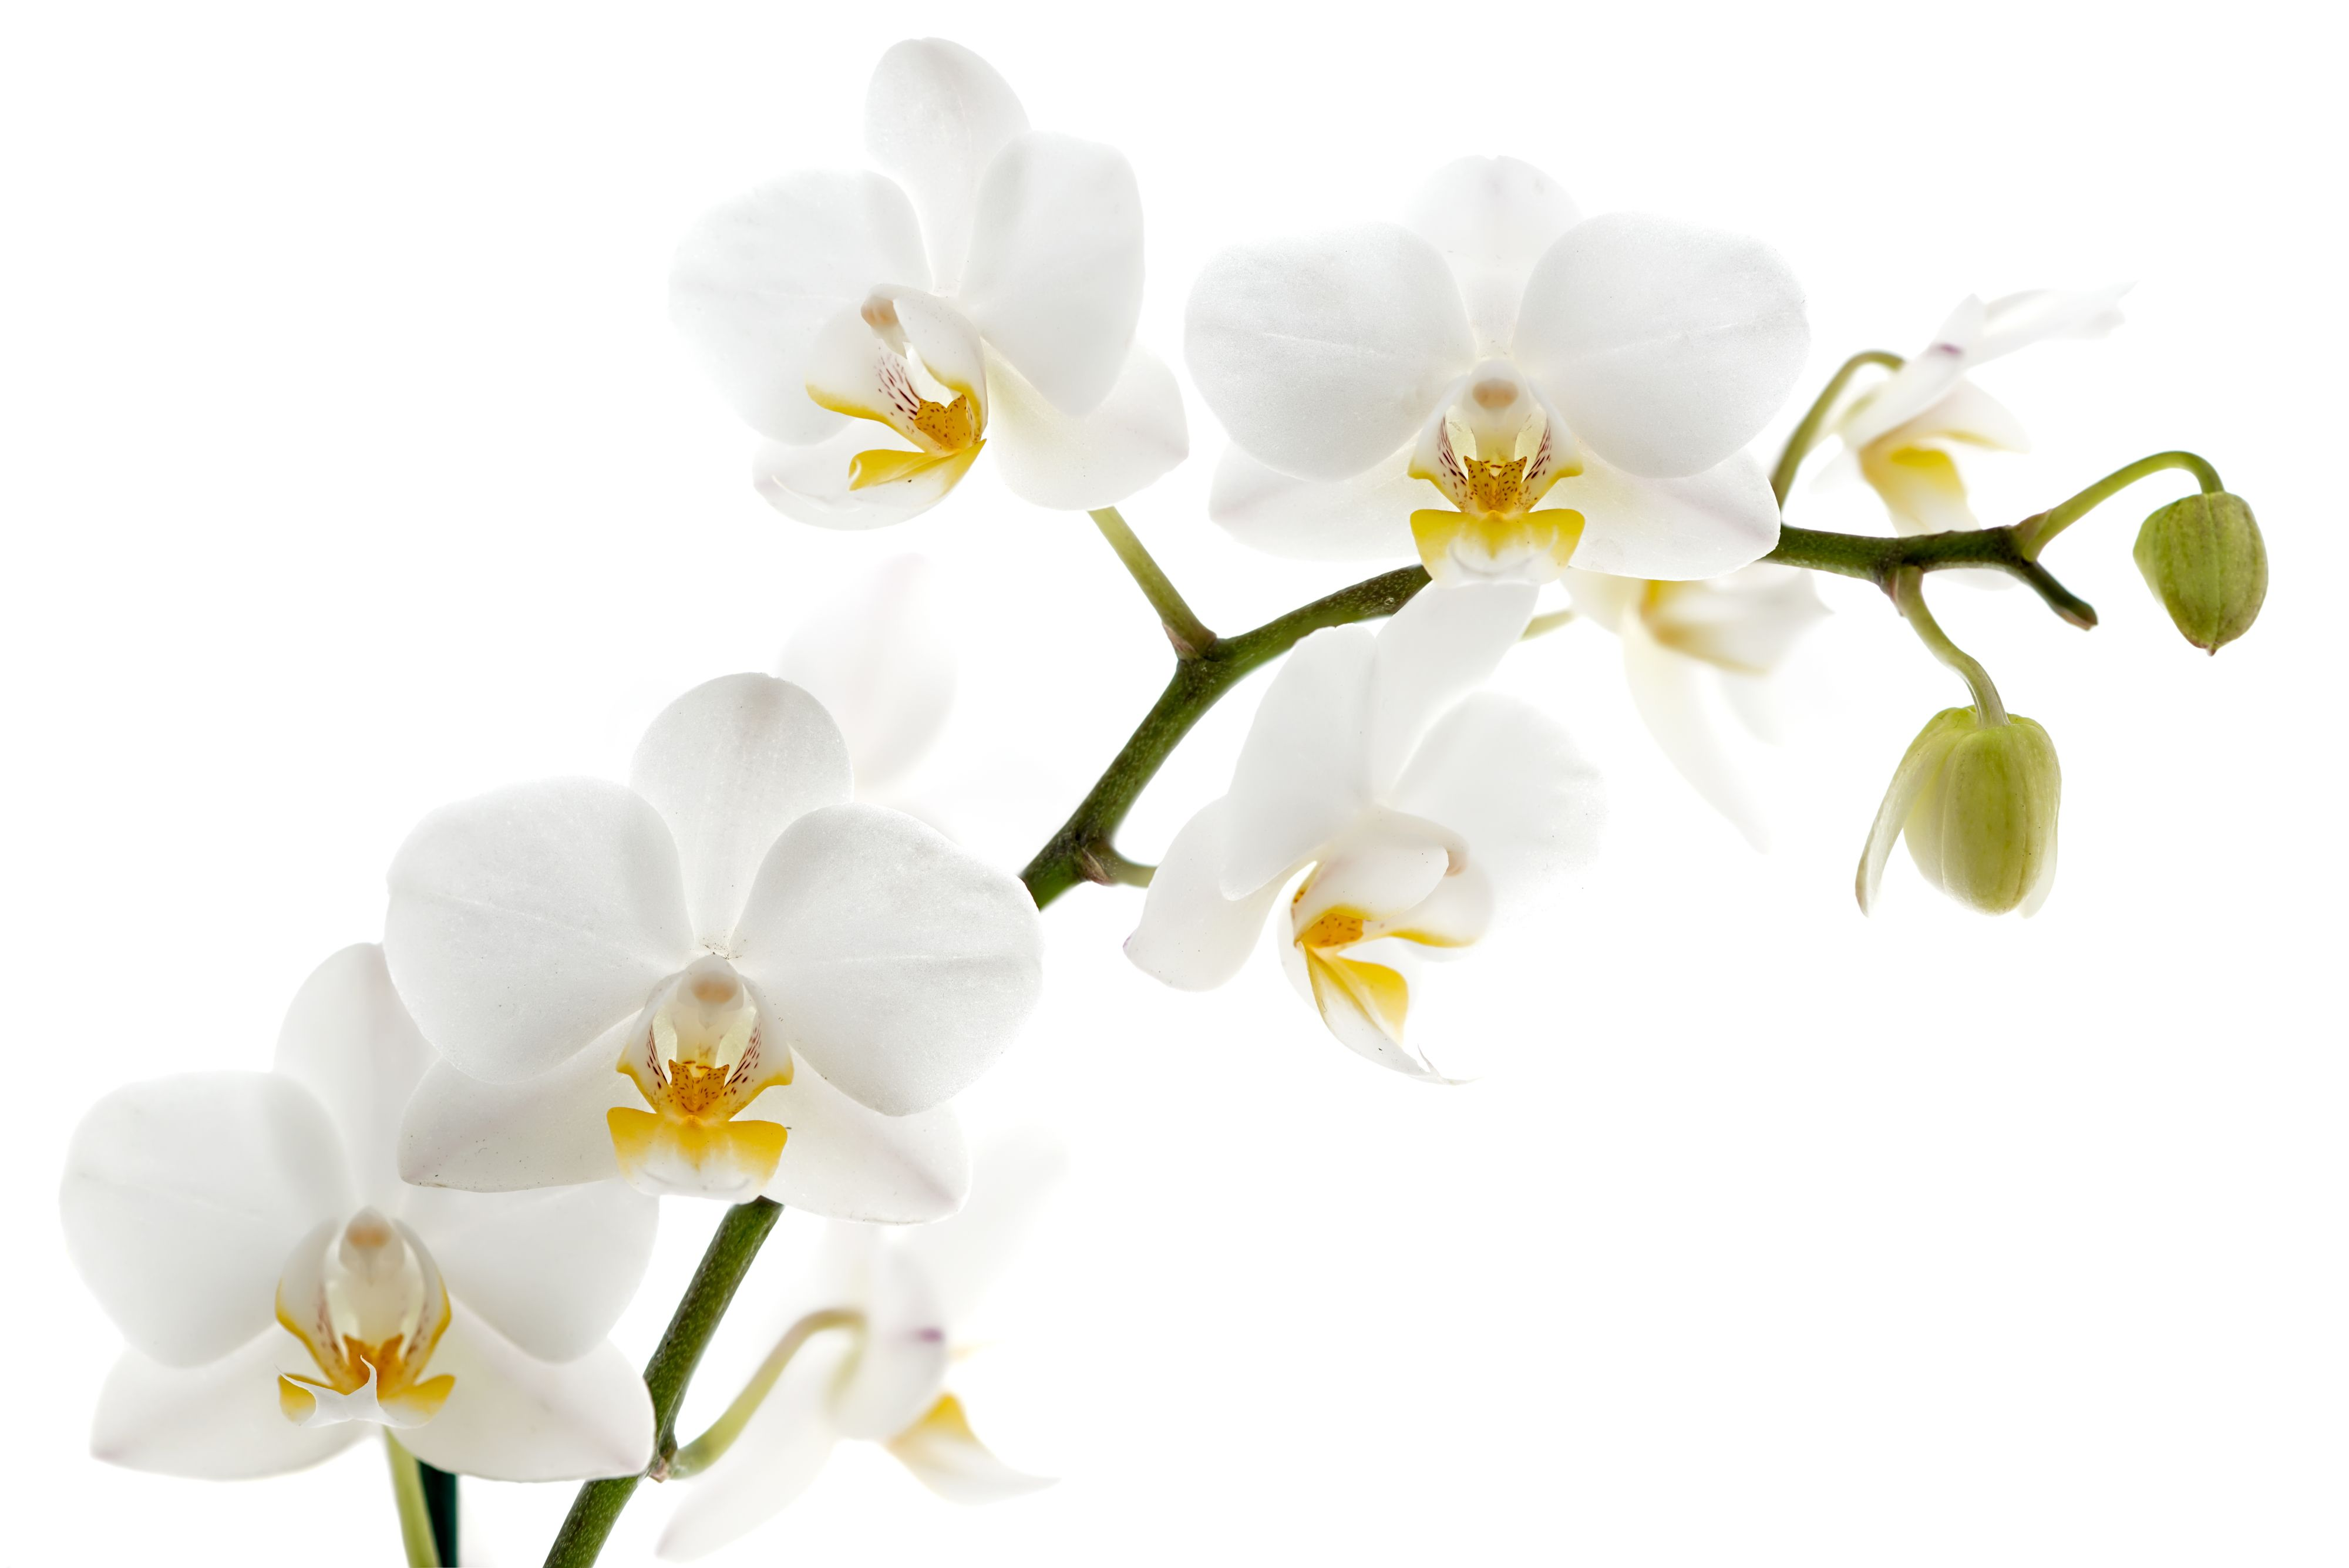 Gaeroladid White Orchid Flower Images Flowers Pinterest